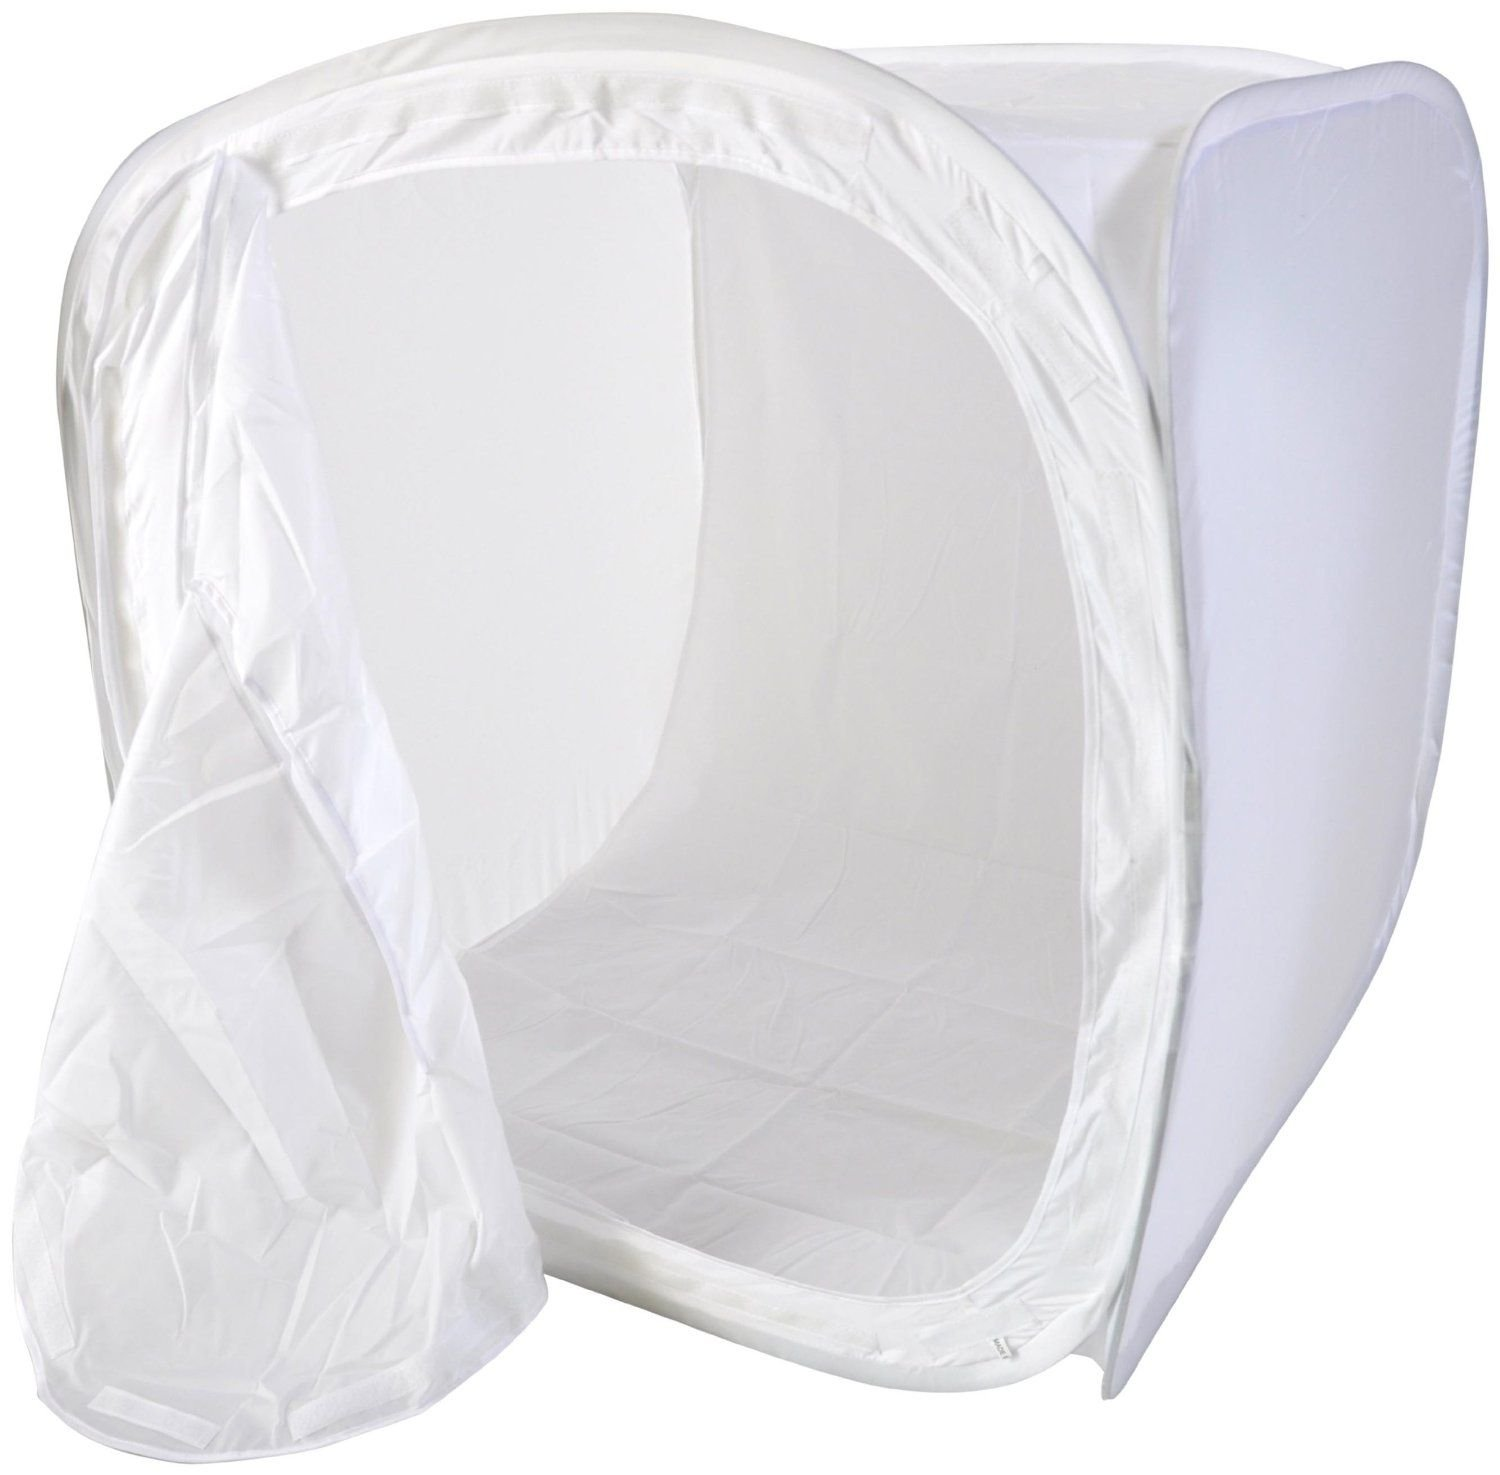 Ex-Pro Photography Light Tent Cube 60 x 60cm 4 Amazon.co.uk Camera u0026 Photo  sc 1 st  Amazon UK : light tent for photography - memphite.com